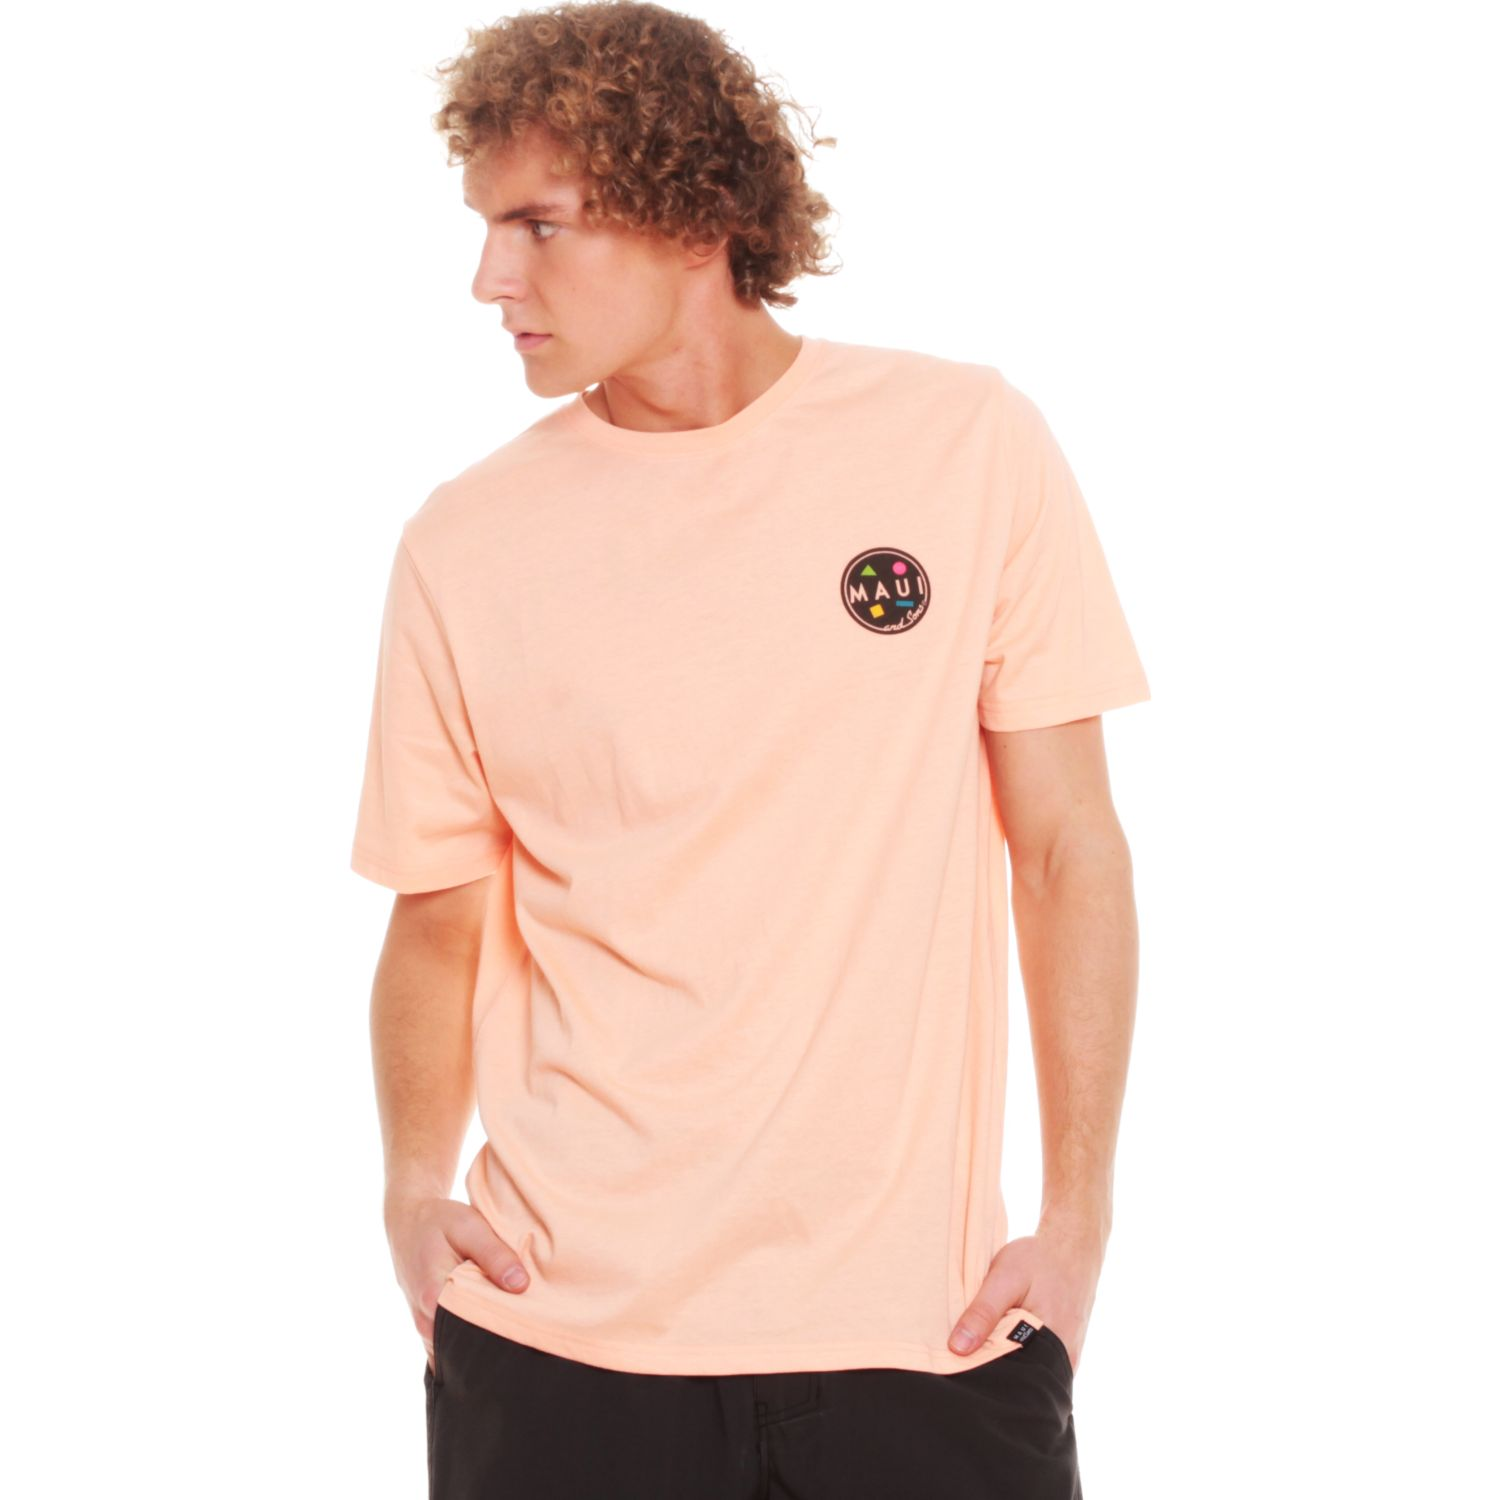 MAUI AND SONS Polera Mc 5p180-Mv20 Naranja Polos